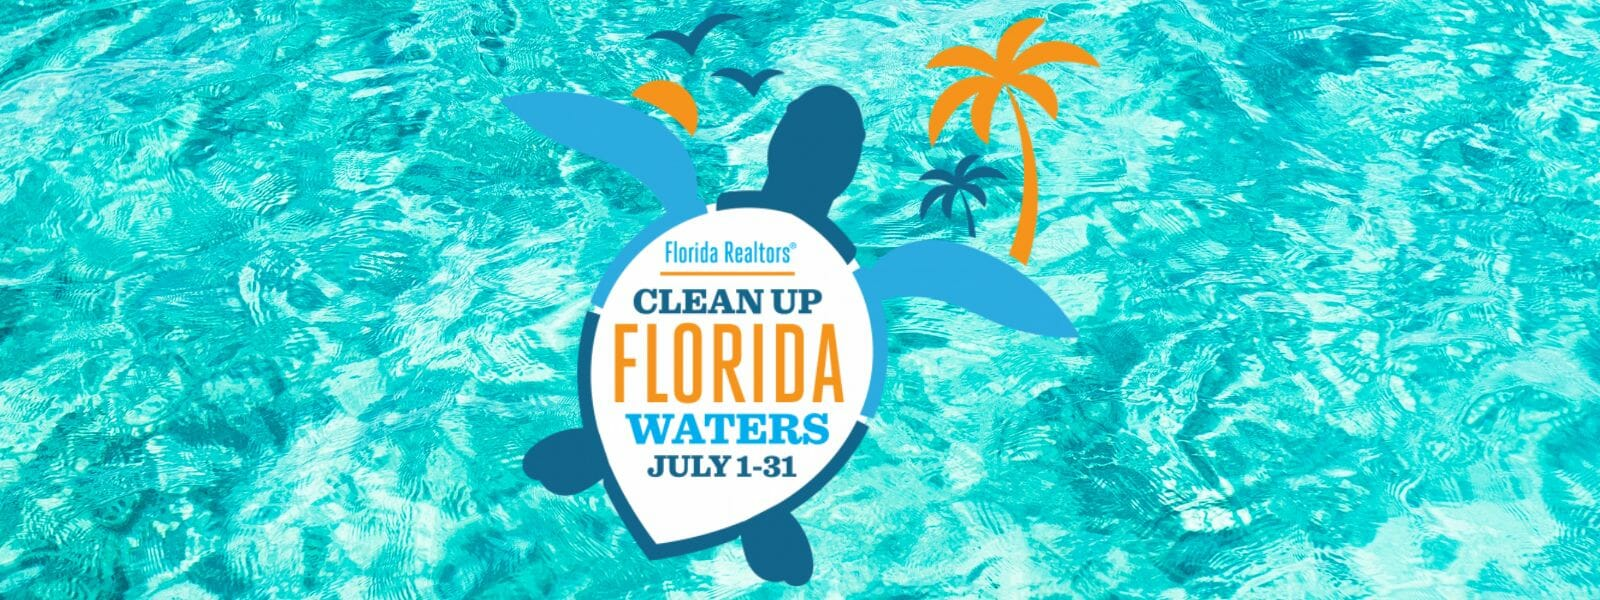 Clean Up Florida Waters